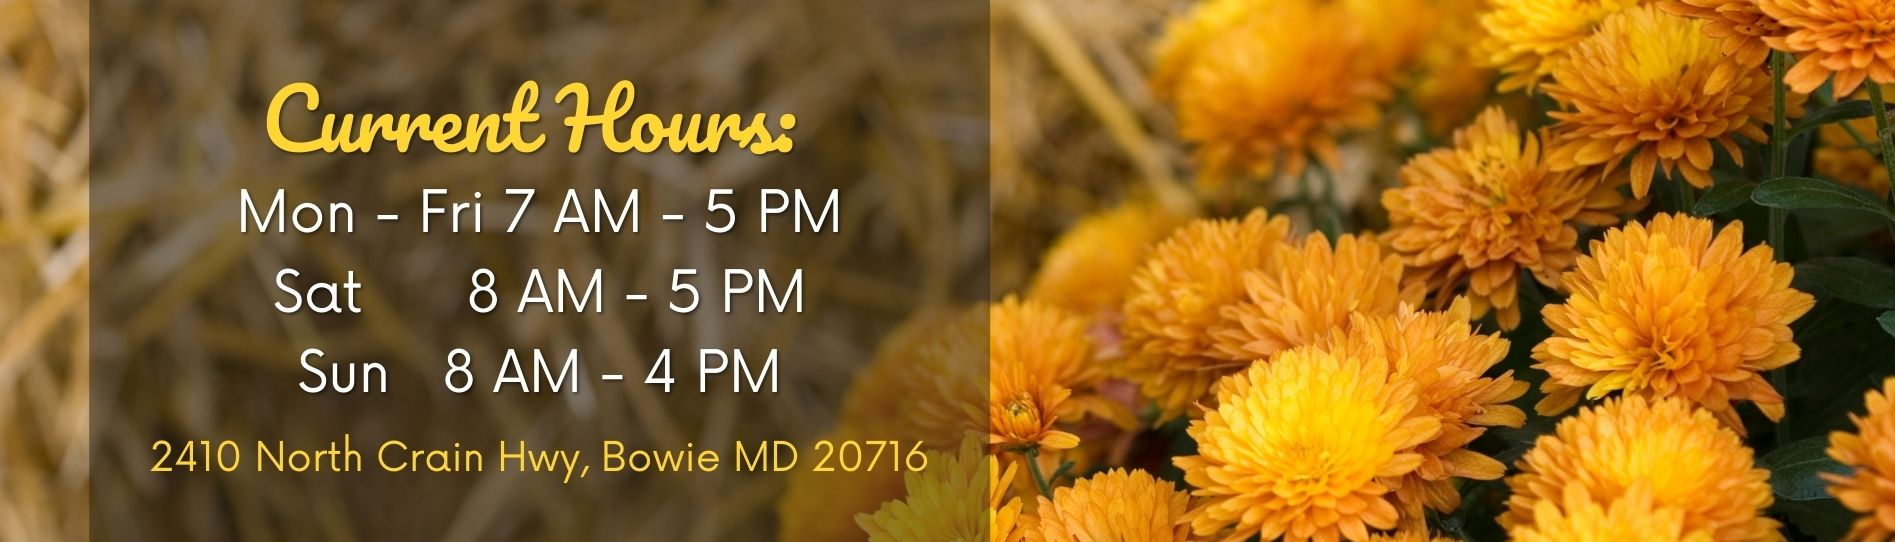 Mums and Hay New Store Hours Banner